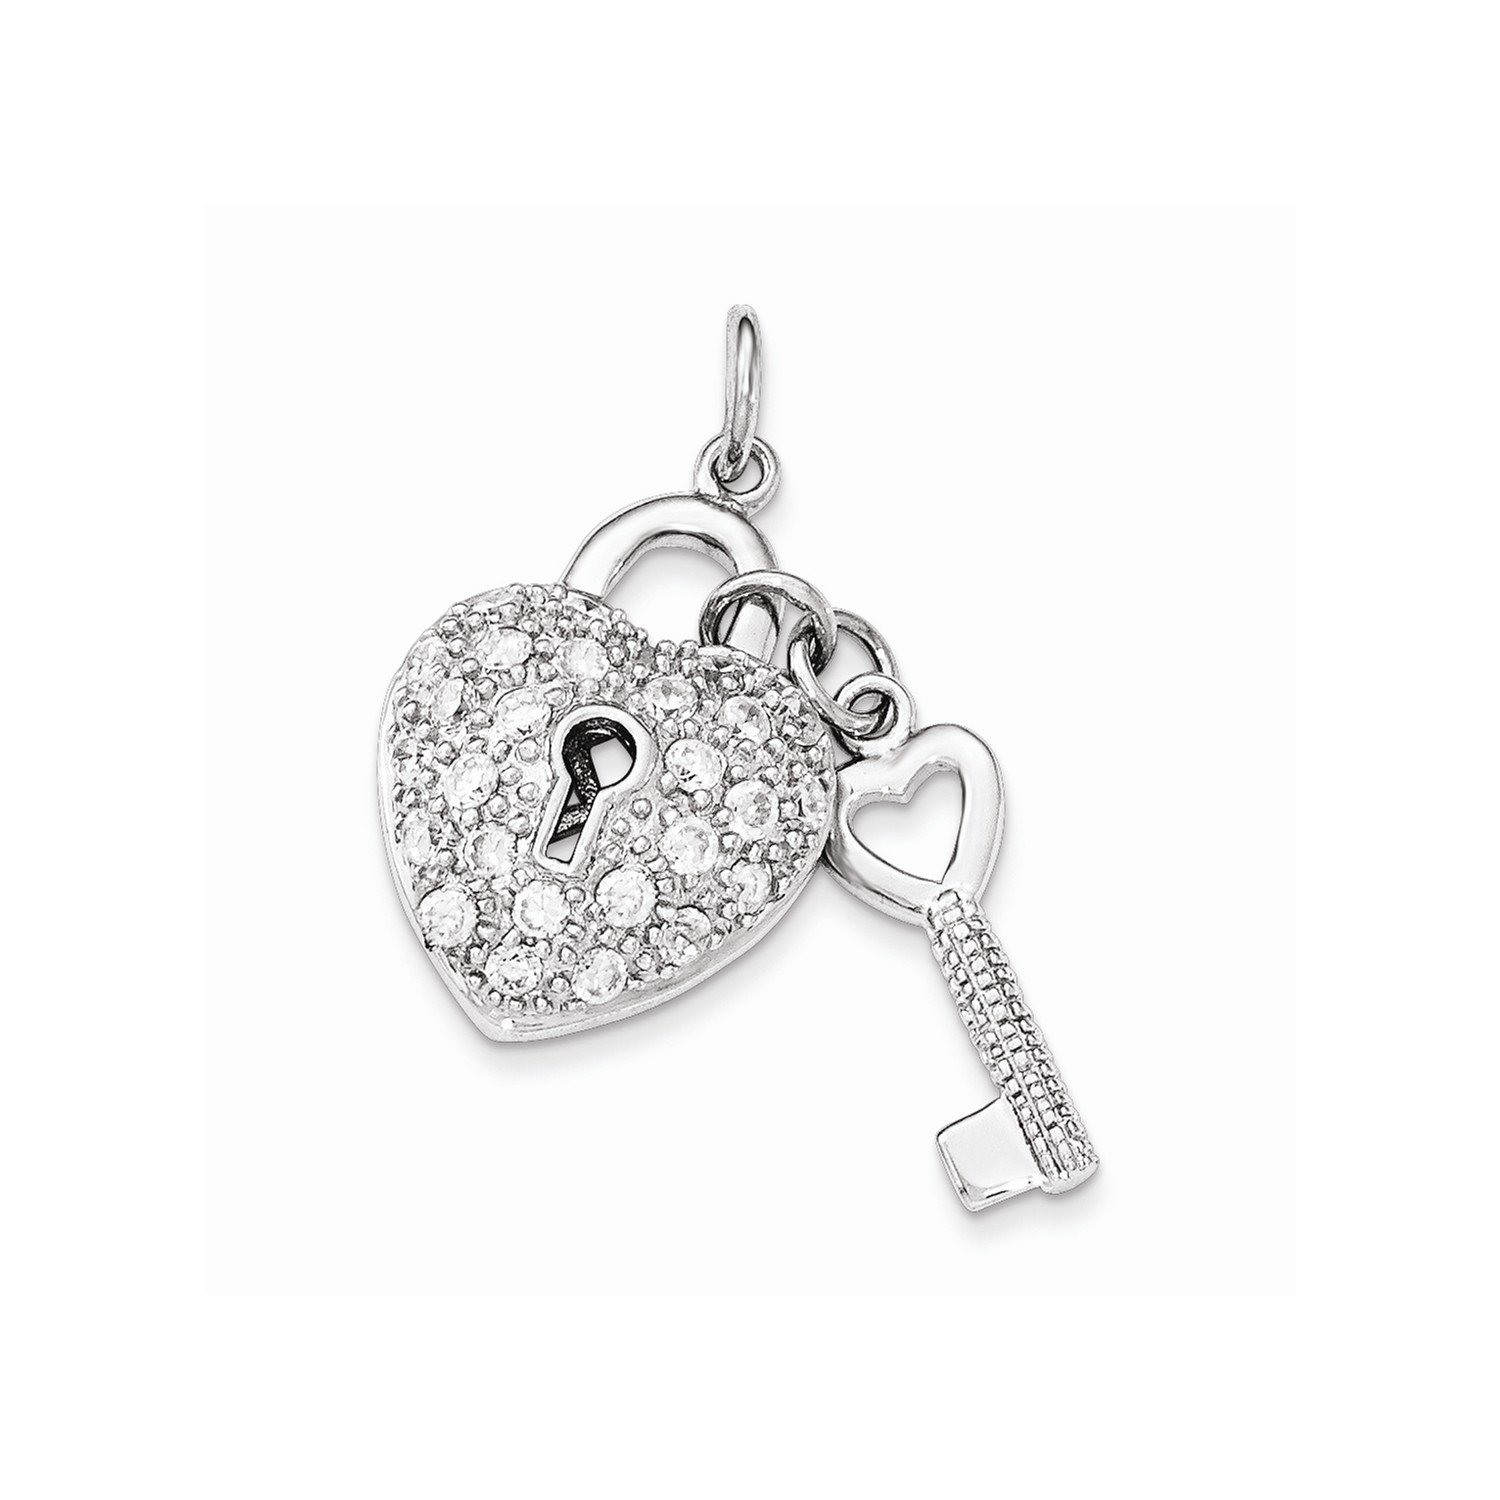 West Coast Jewelry Sterling Silver CZ Heart Lock /& Key Pendant